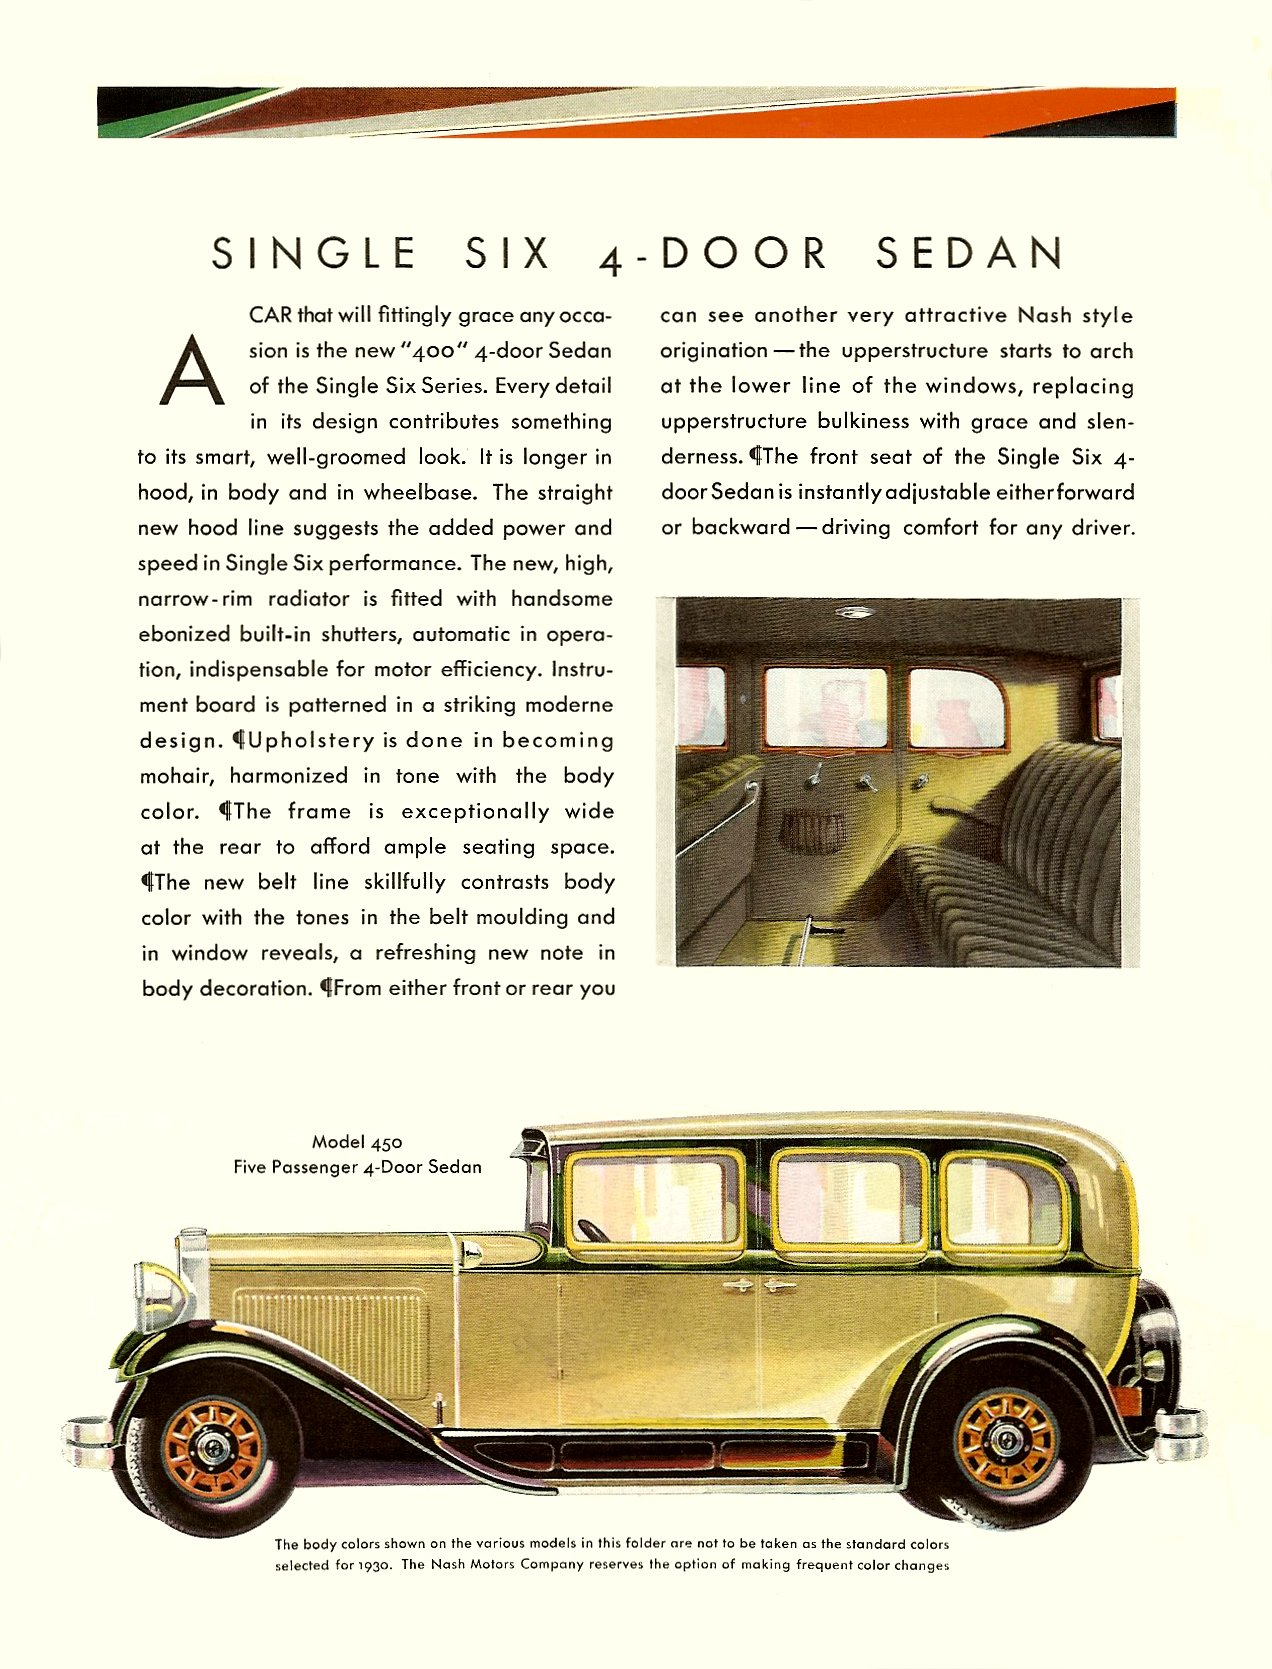 """NASH """"400"""" series for 1930 SINGLE IGNITION SEDANS Coupe • Cabriolet Page 1, 8.5″x11″"""